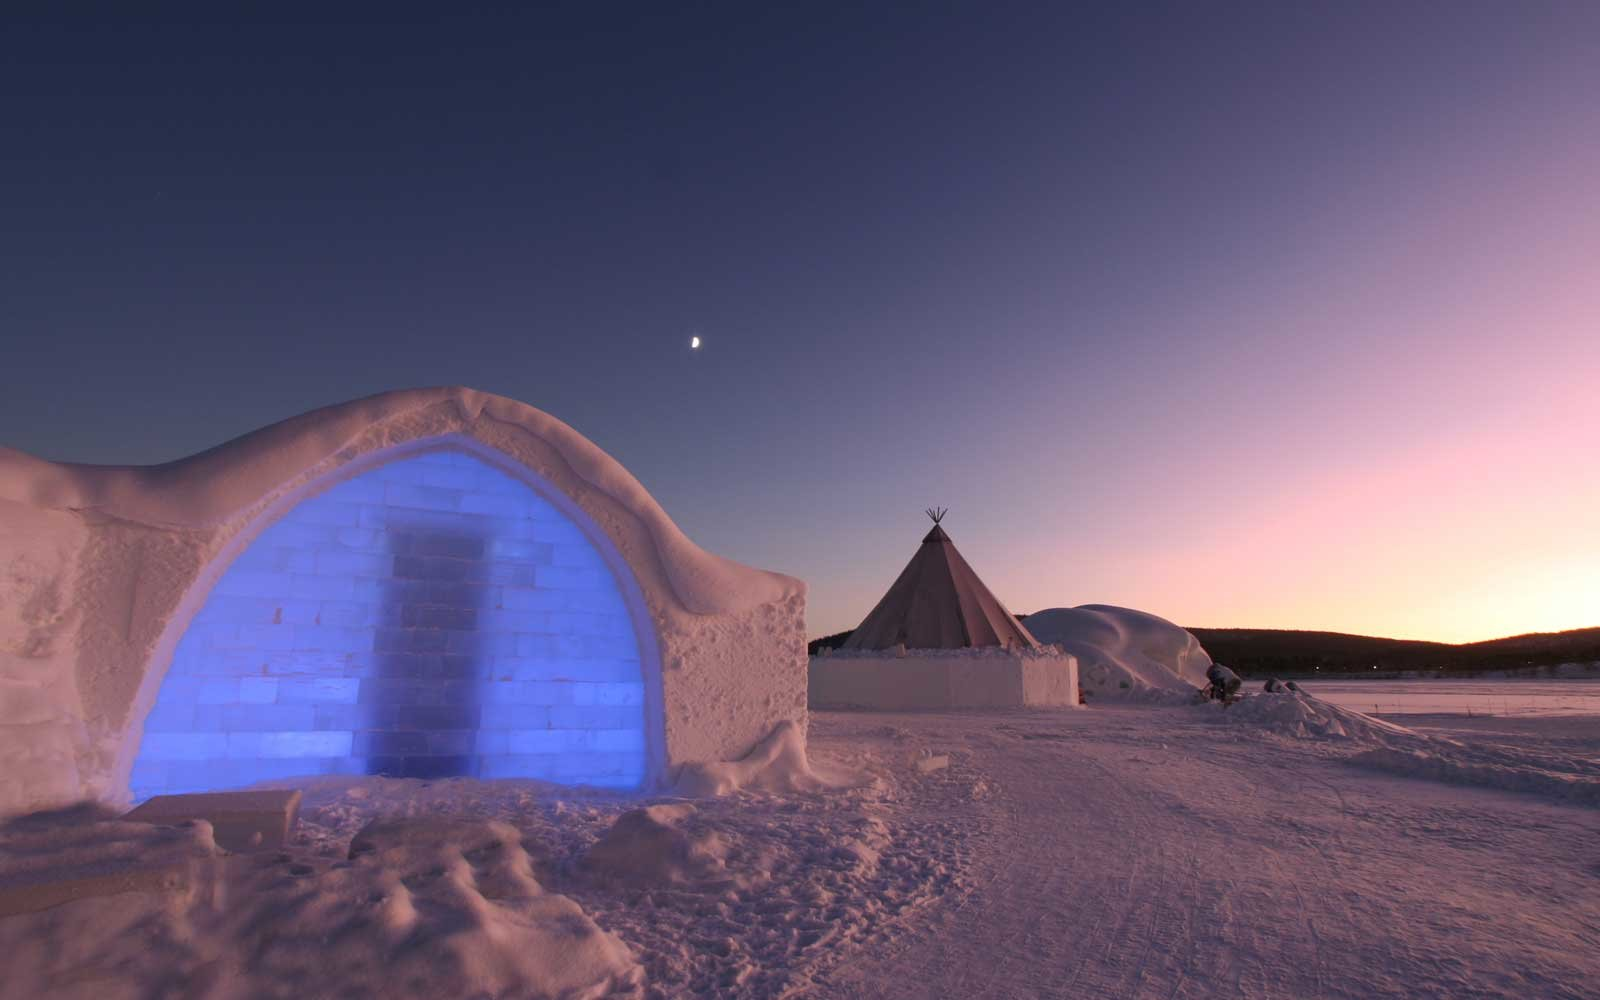 The Icehotel in Sweden provides a cool stay alongside a variety of northern light excursions.